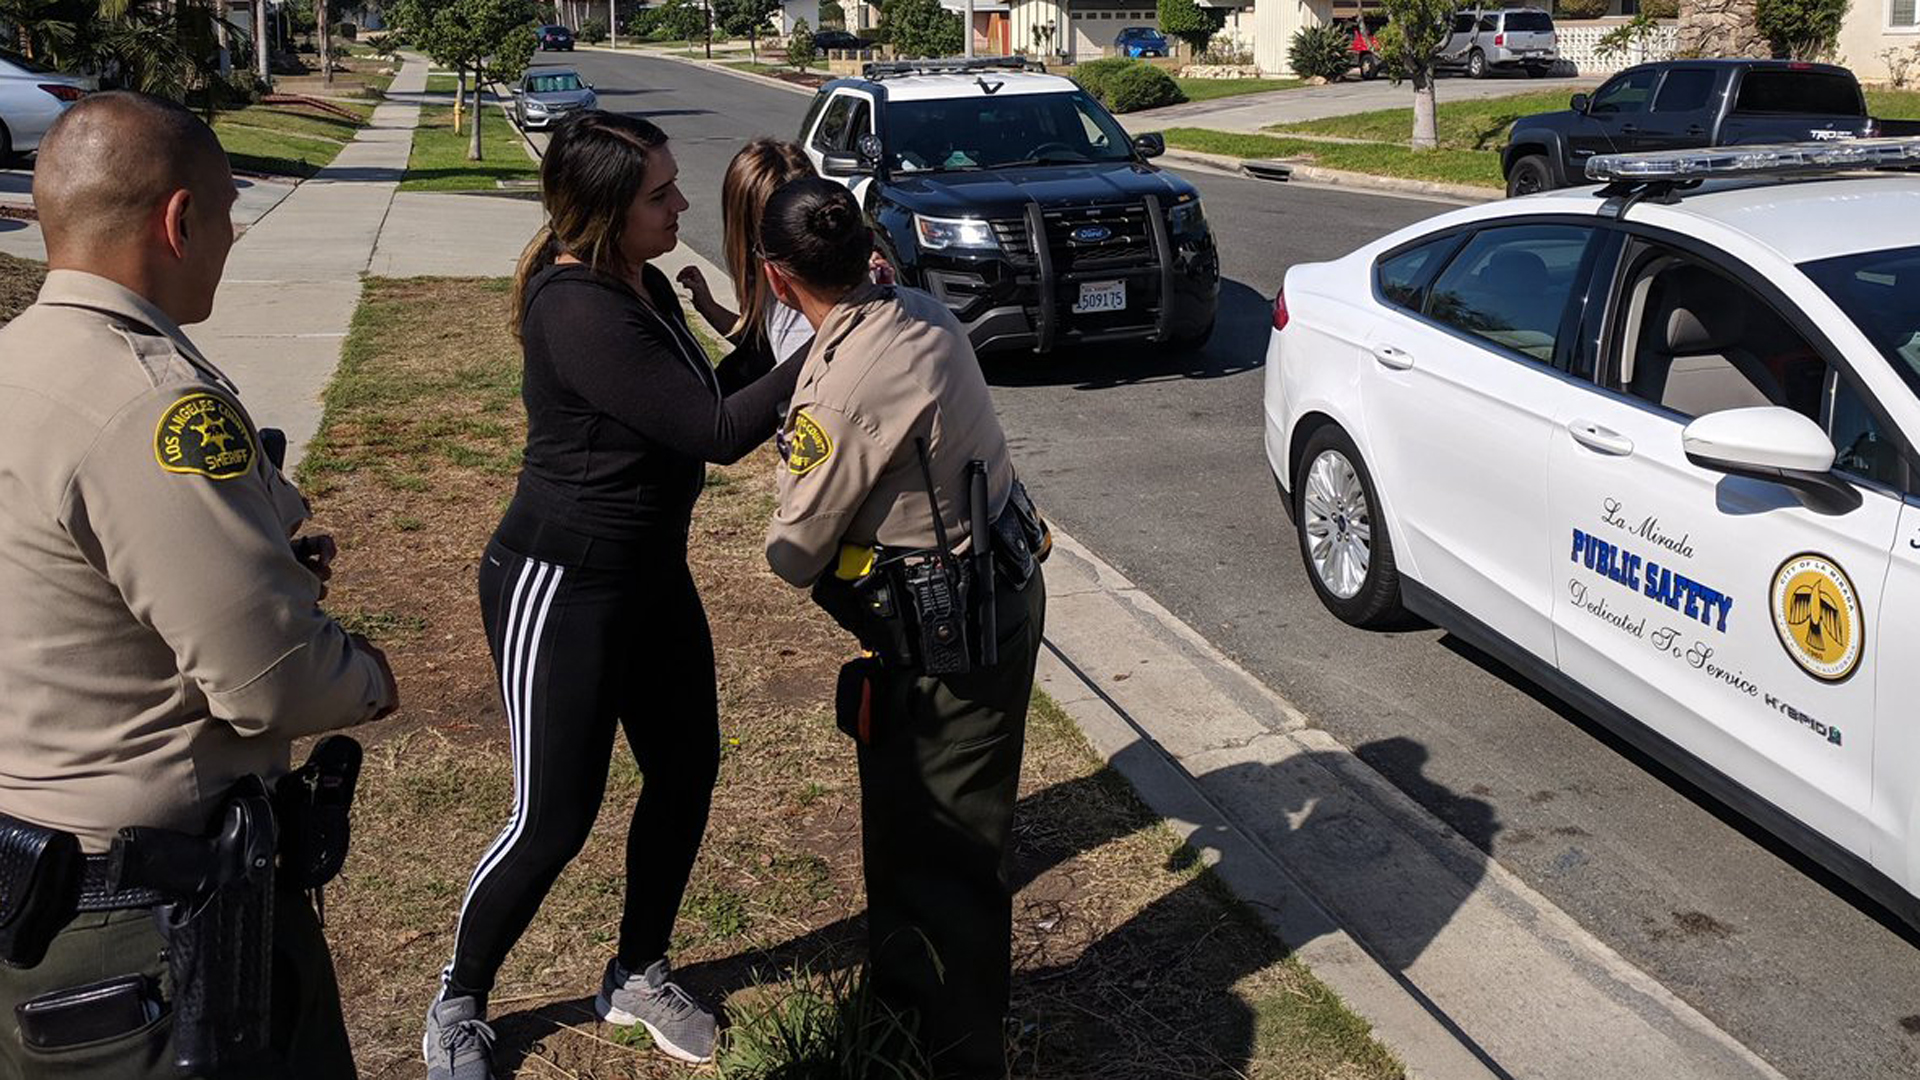 A good Samaritan and deputies helped reunited a young girl and her family after the girl was found wandering alone in La Mirada on Oct. 26, 2018. (Credit: Los Angeles County Sheriff's Department)